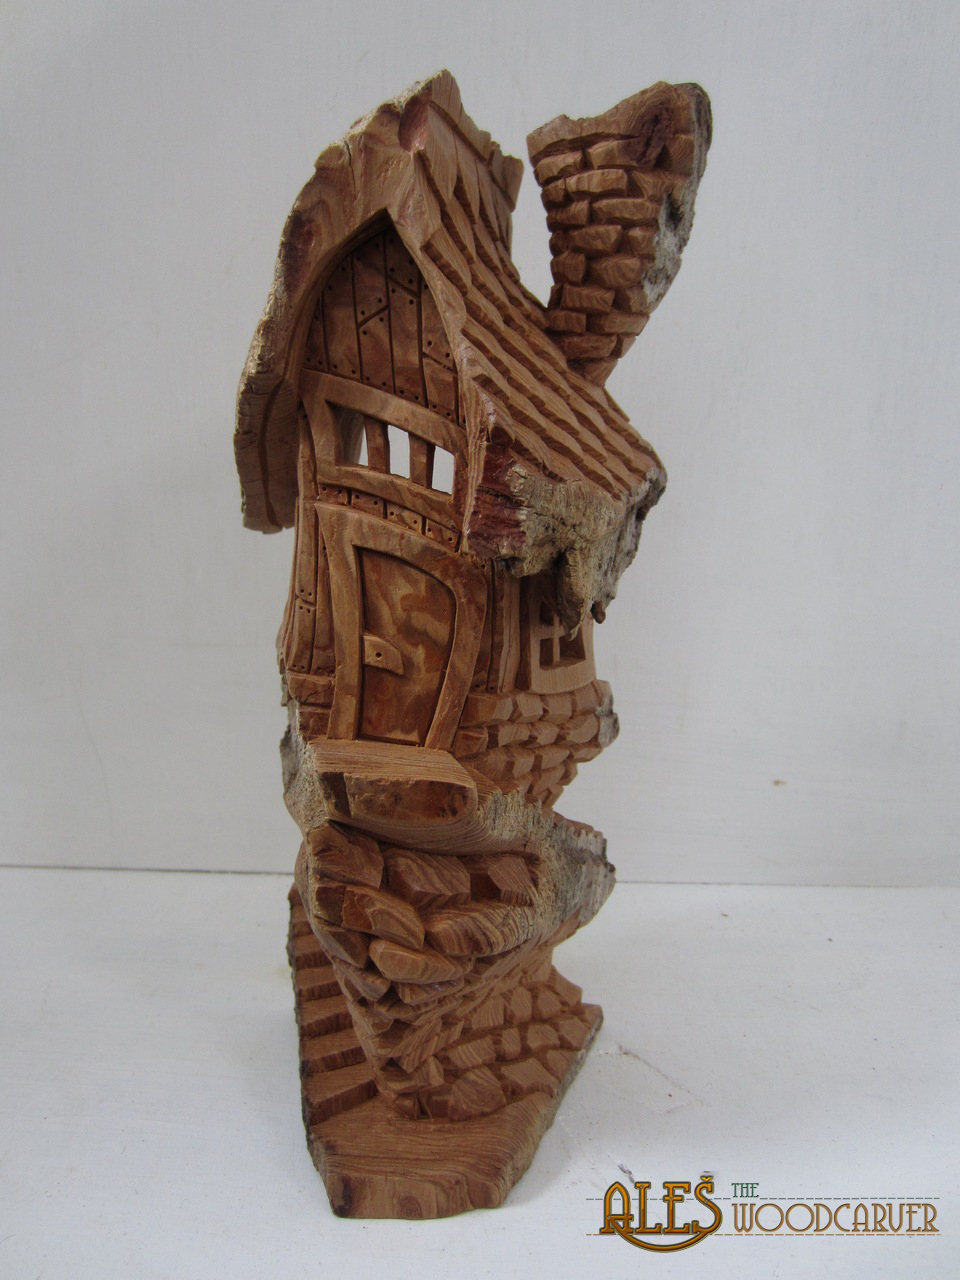 Ales the woodcarver a permanent place for my carvings at